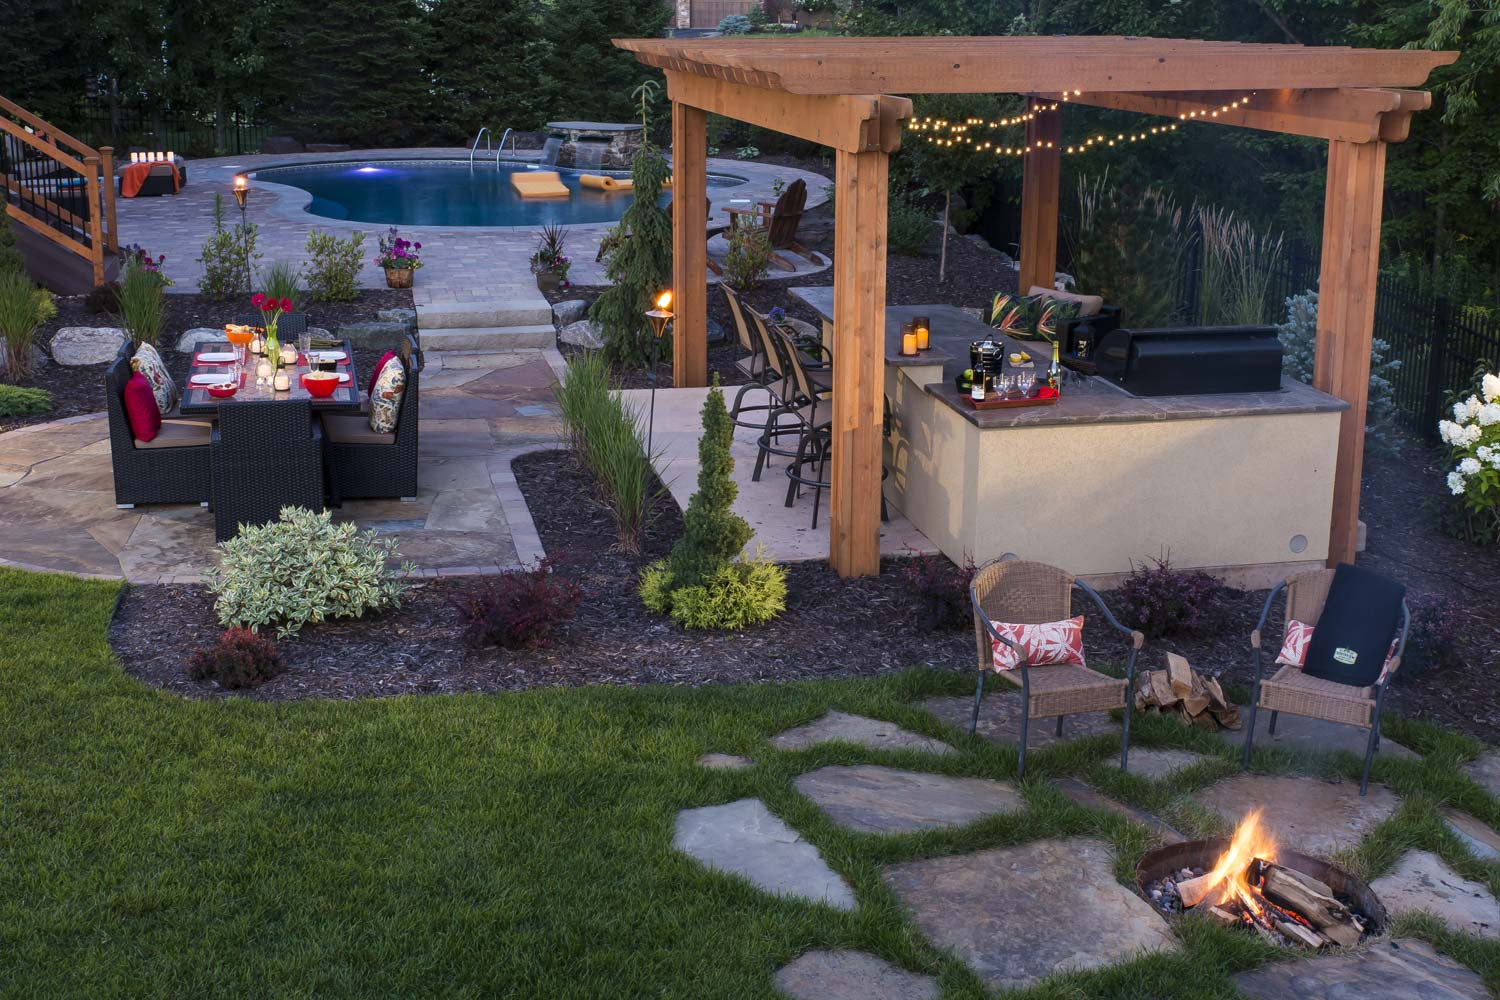 dining patio, fire pit, and pergola over outdoor kitchen and bar